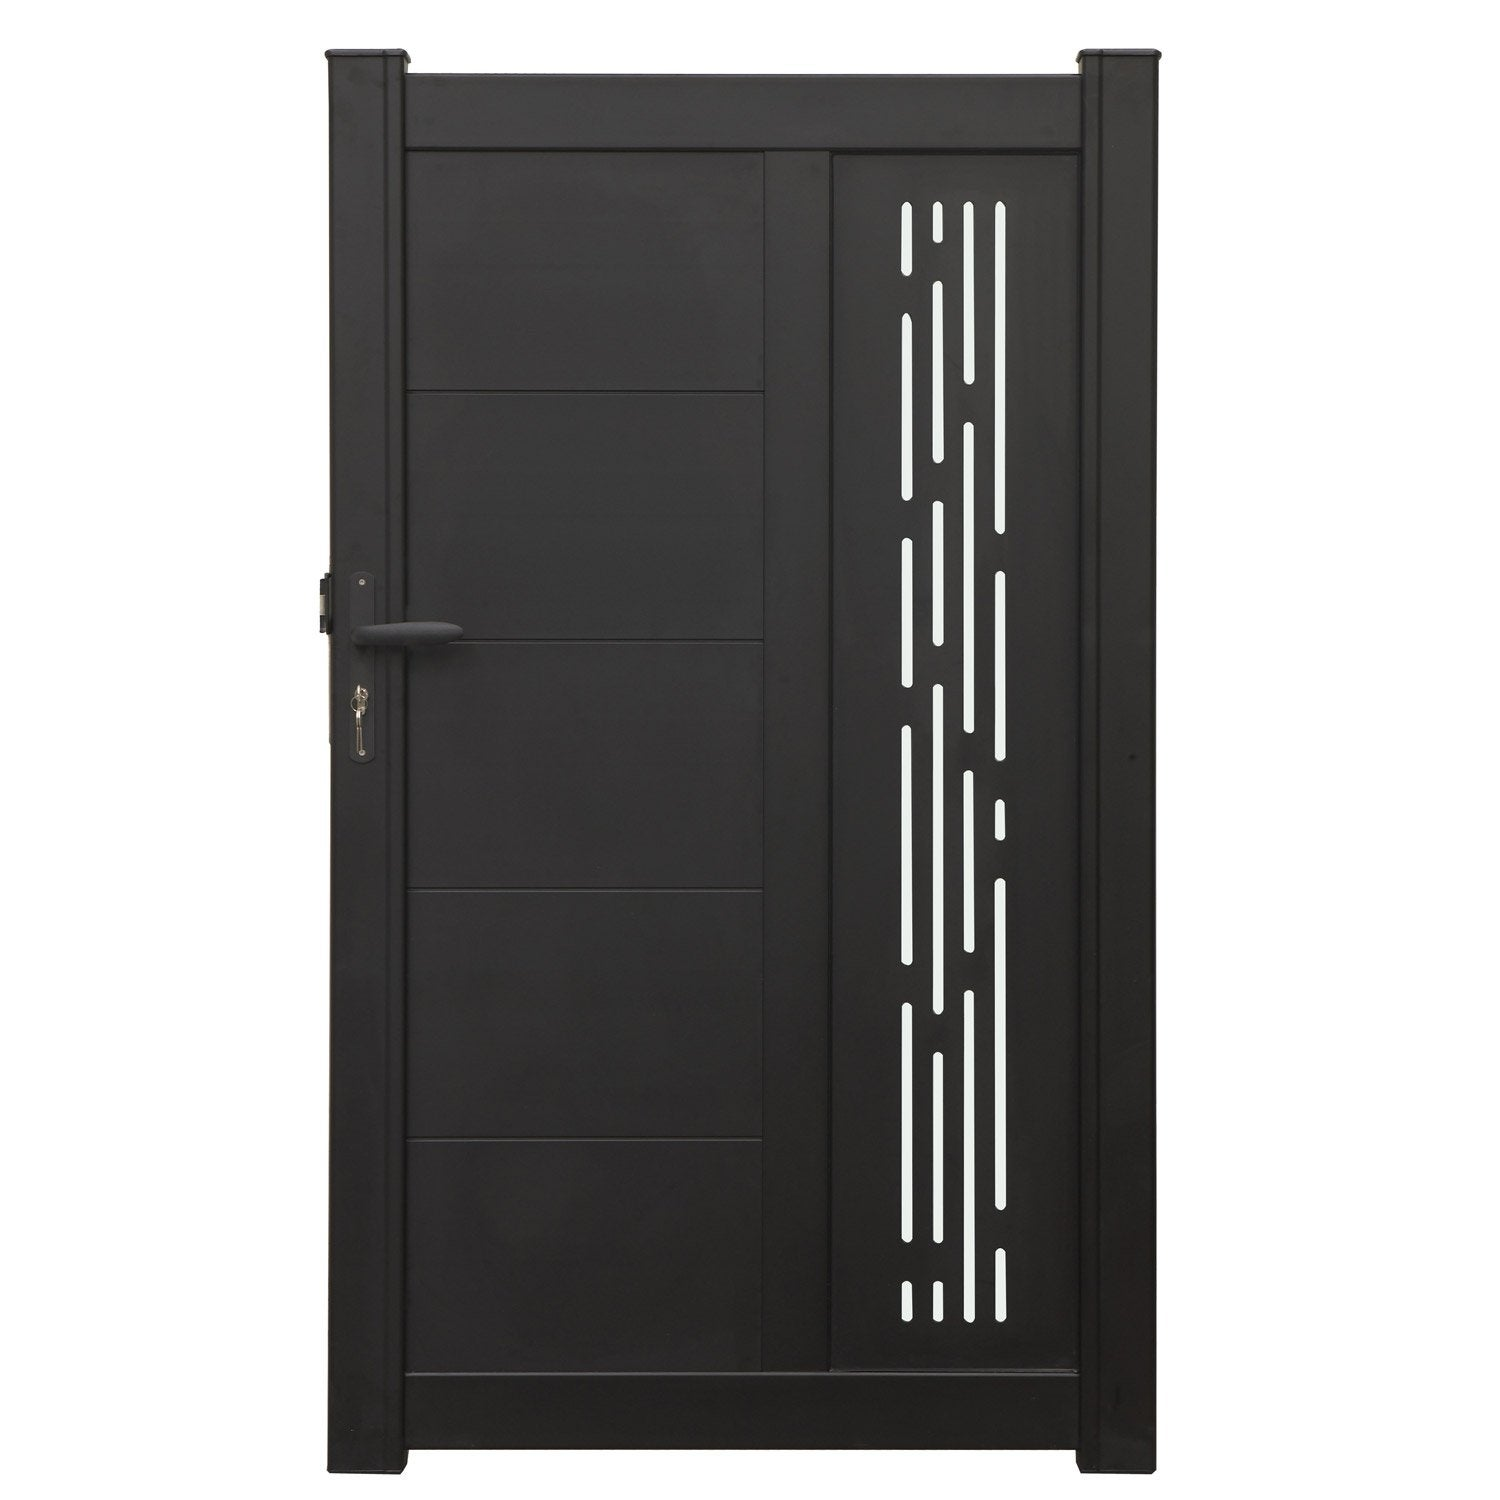 portillon battant en aluminium norfolk x cm leroy merlin. Black Bedroom Furniture Sets. Home Design Ideas